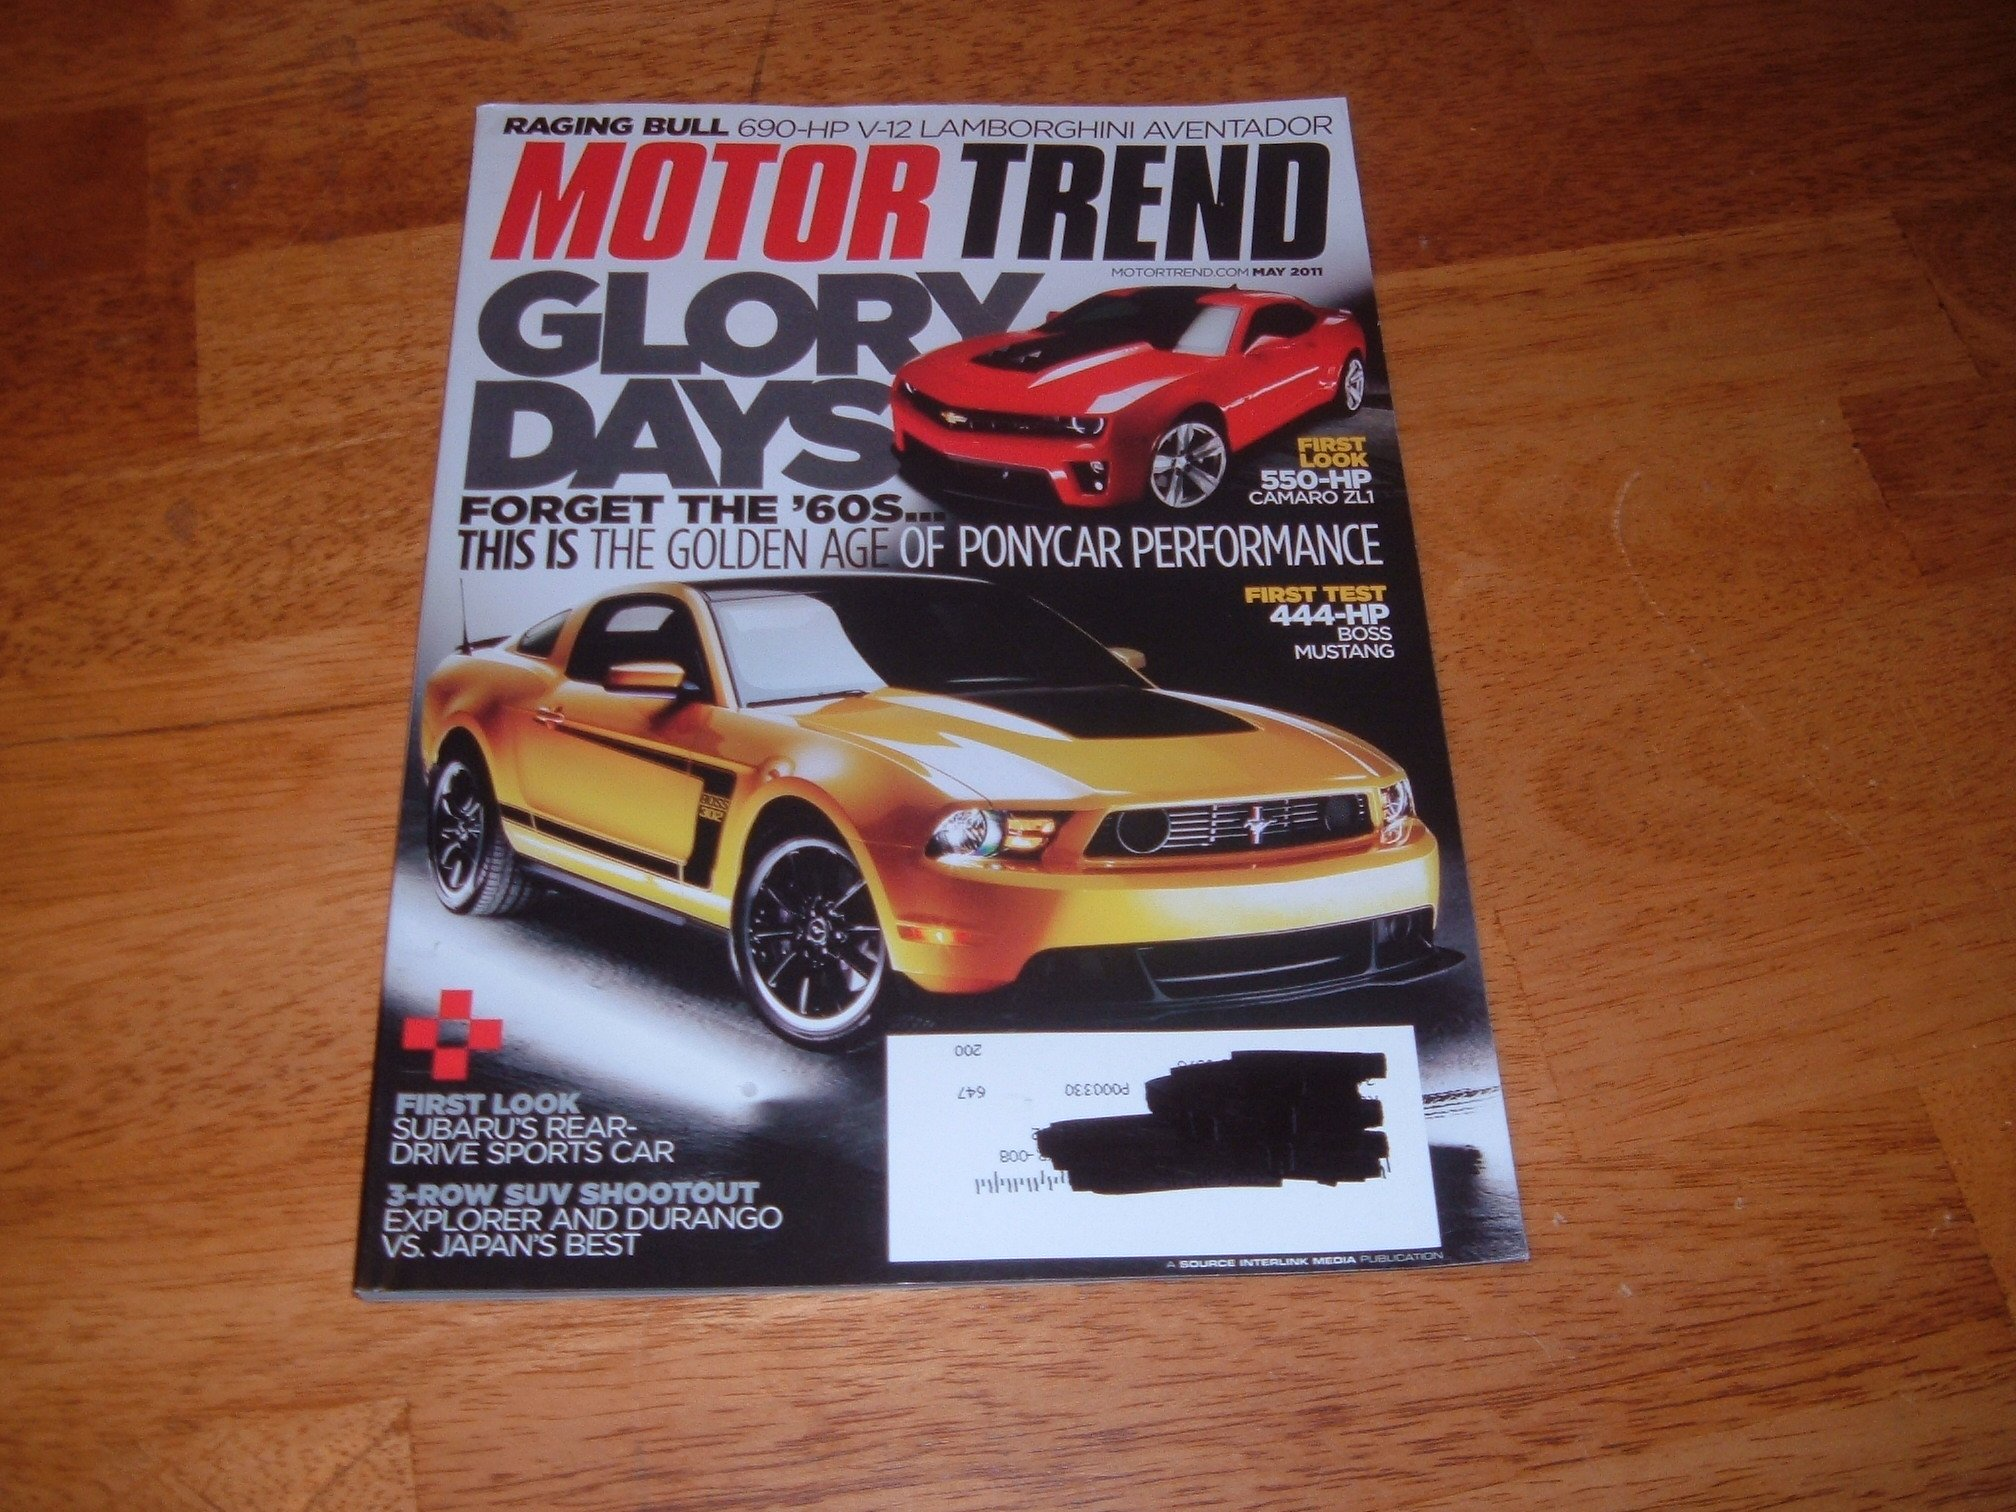 Motor Trend Magazine May 2011 Motor Trend May 2011 444 hp